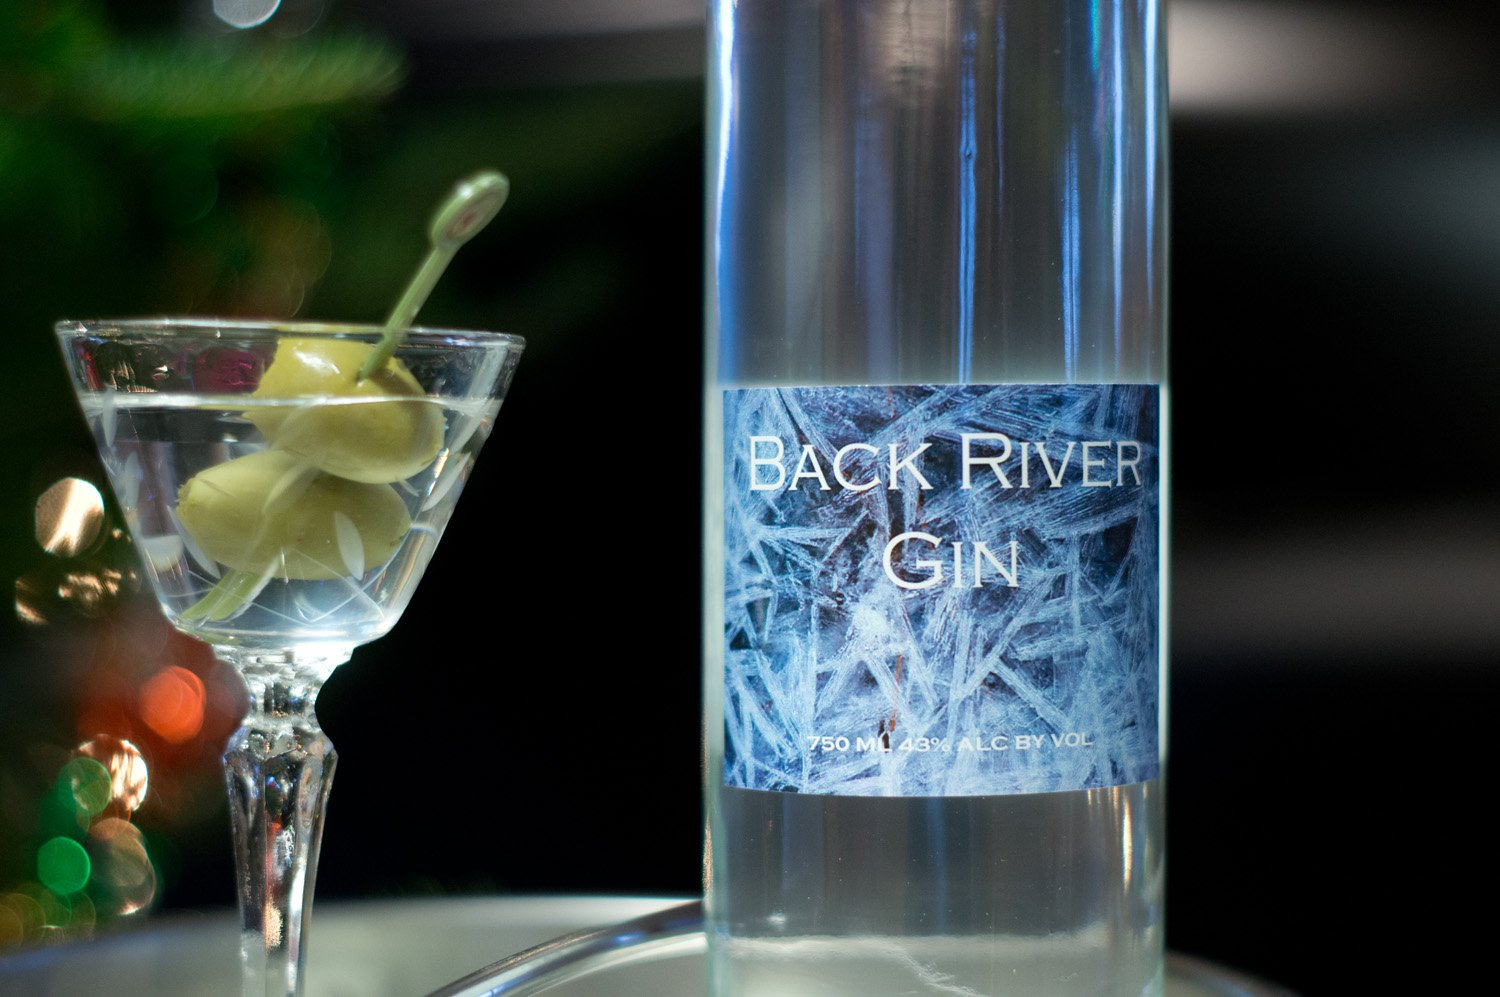 Back River Gin was named Best Gin in the World 2015 in the Fifty Best Gins competition.